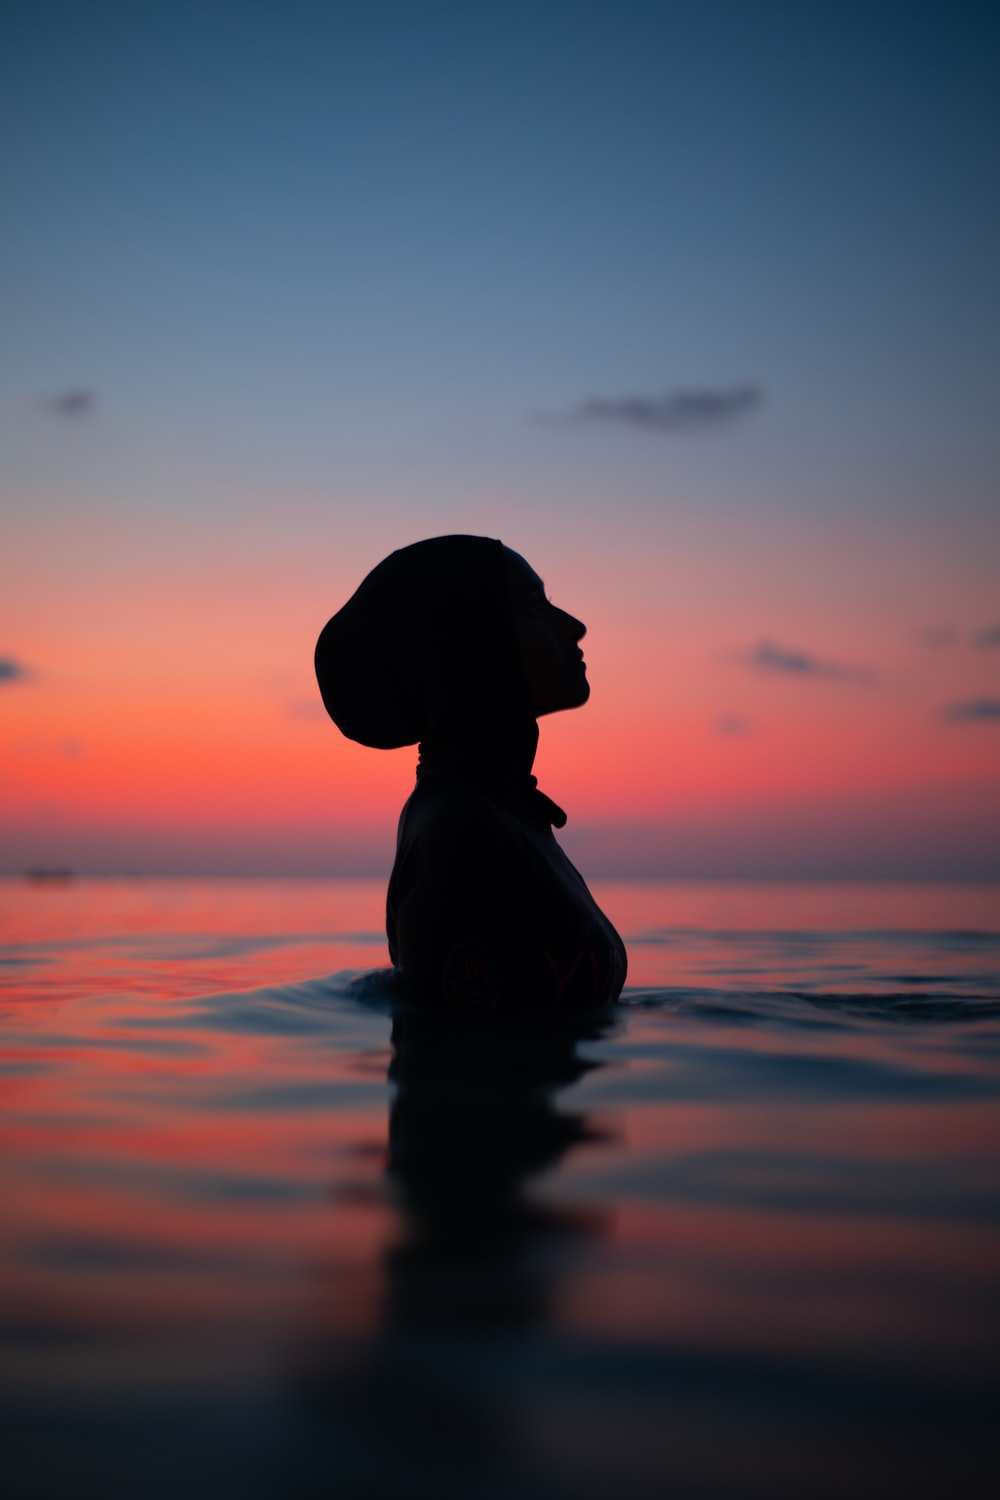 silhouette of woman wearing sun hat on water during sunset